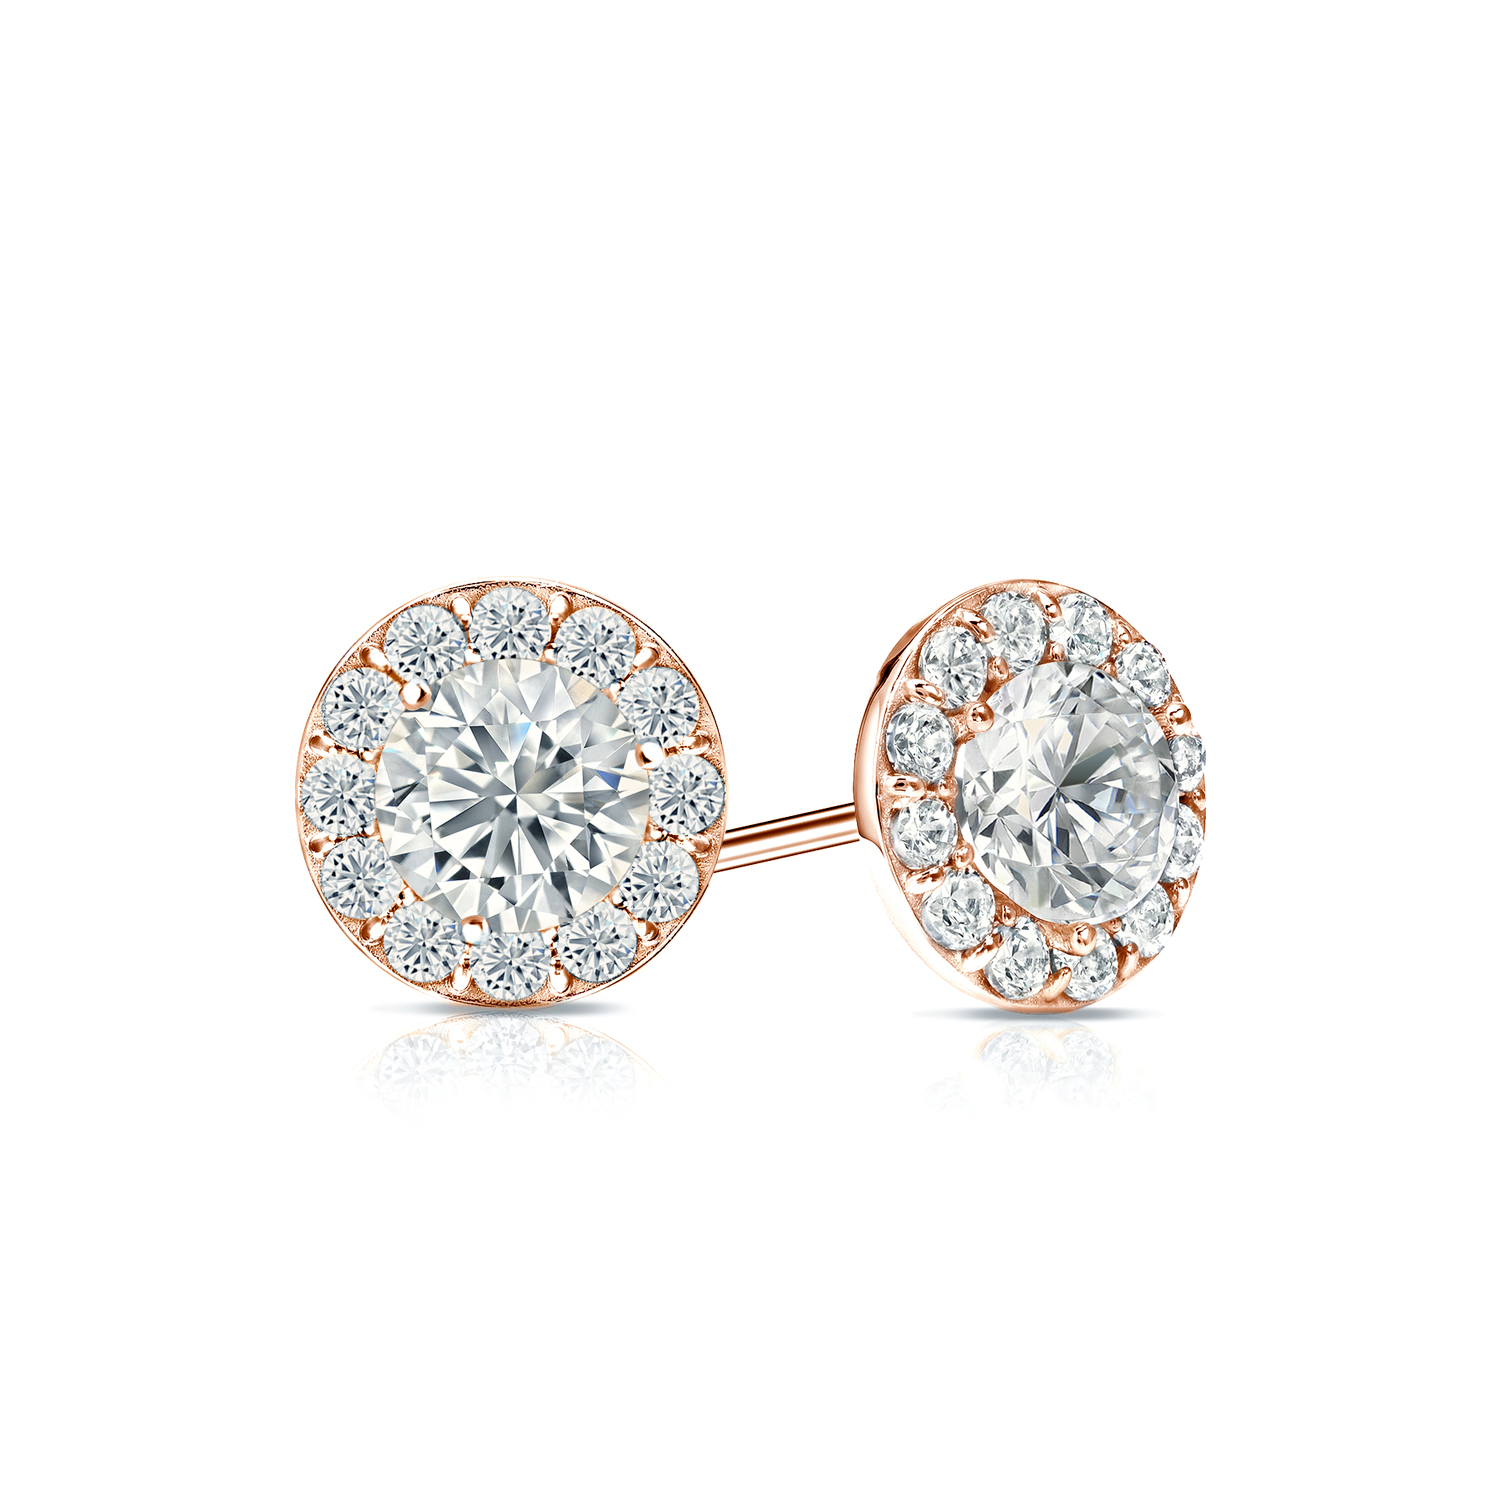 Certified 1.00 cttw Round Diamond Stud Earrings in 14k Rose Gold Halo (G-H, VS)